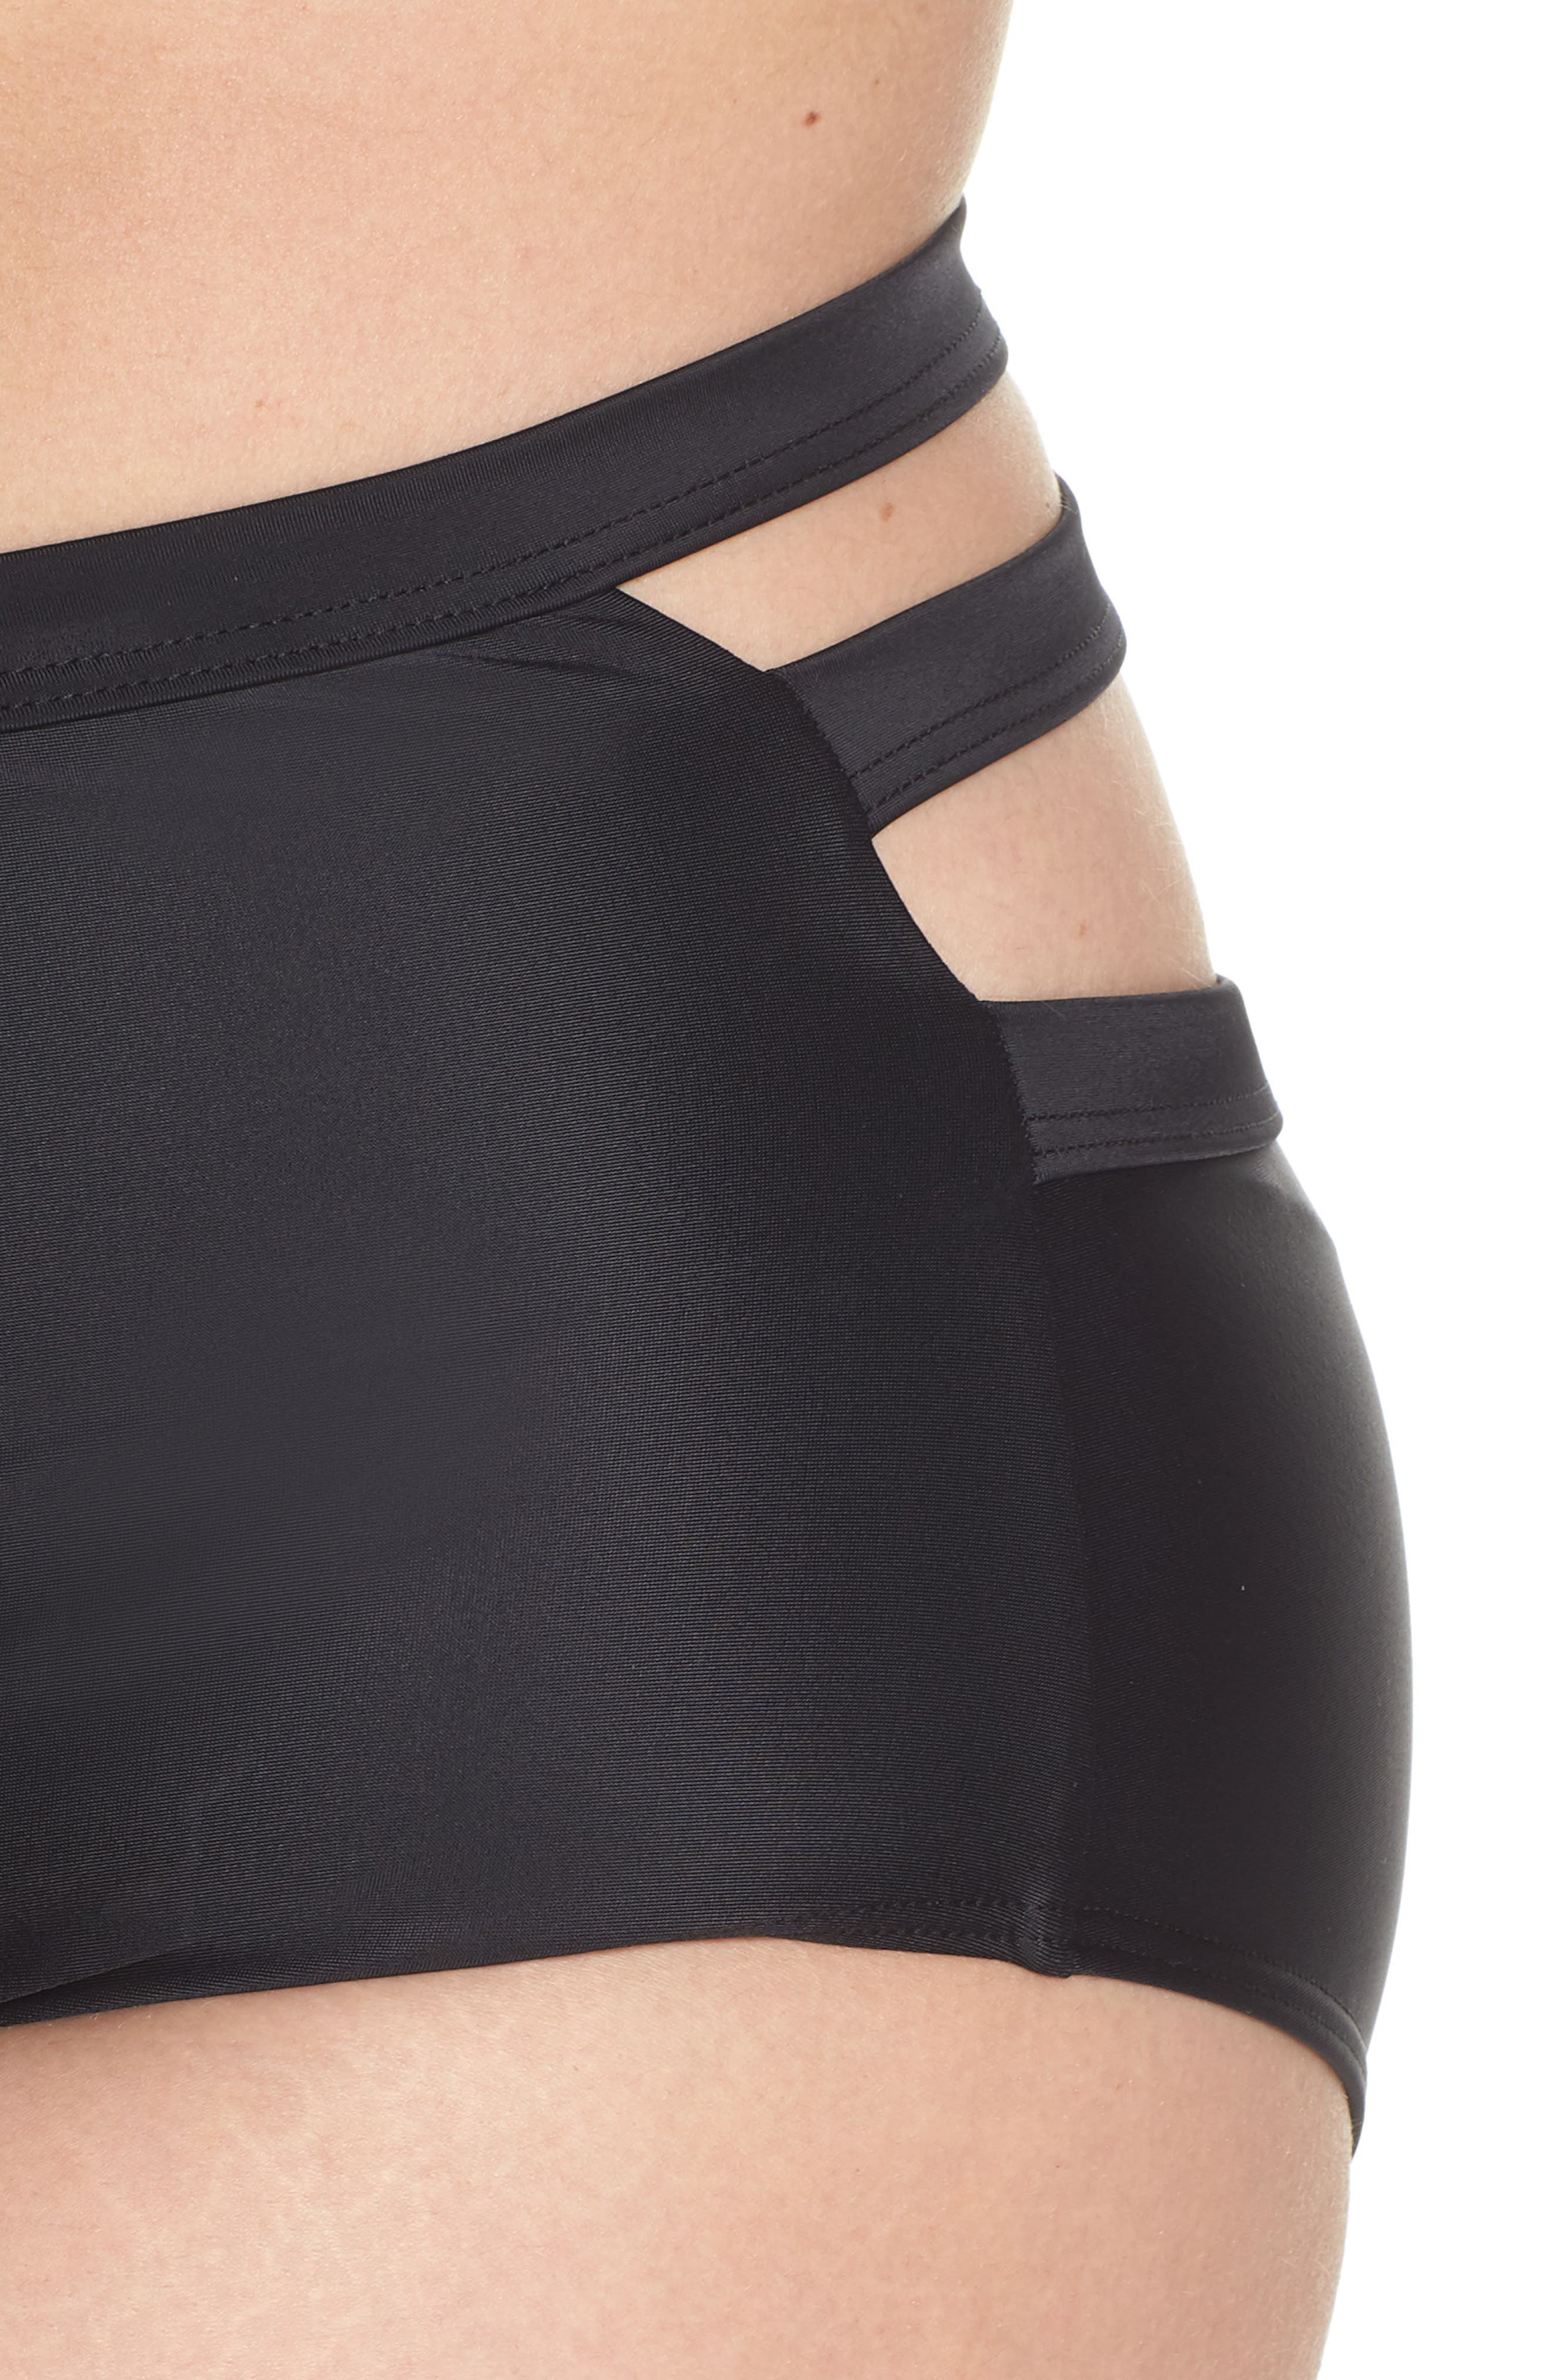 Bouloux II High Waist Bikini Bottoms,                             Alternate thumbnail 11, color,                             Black